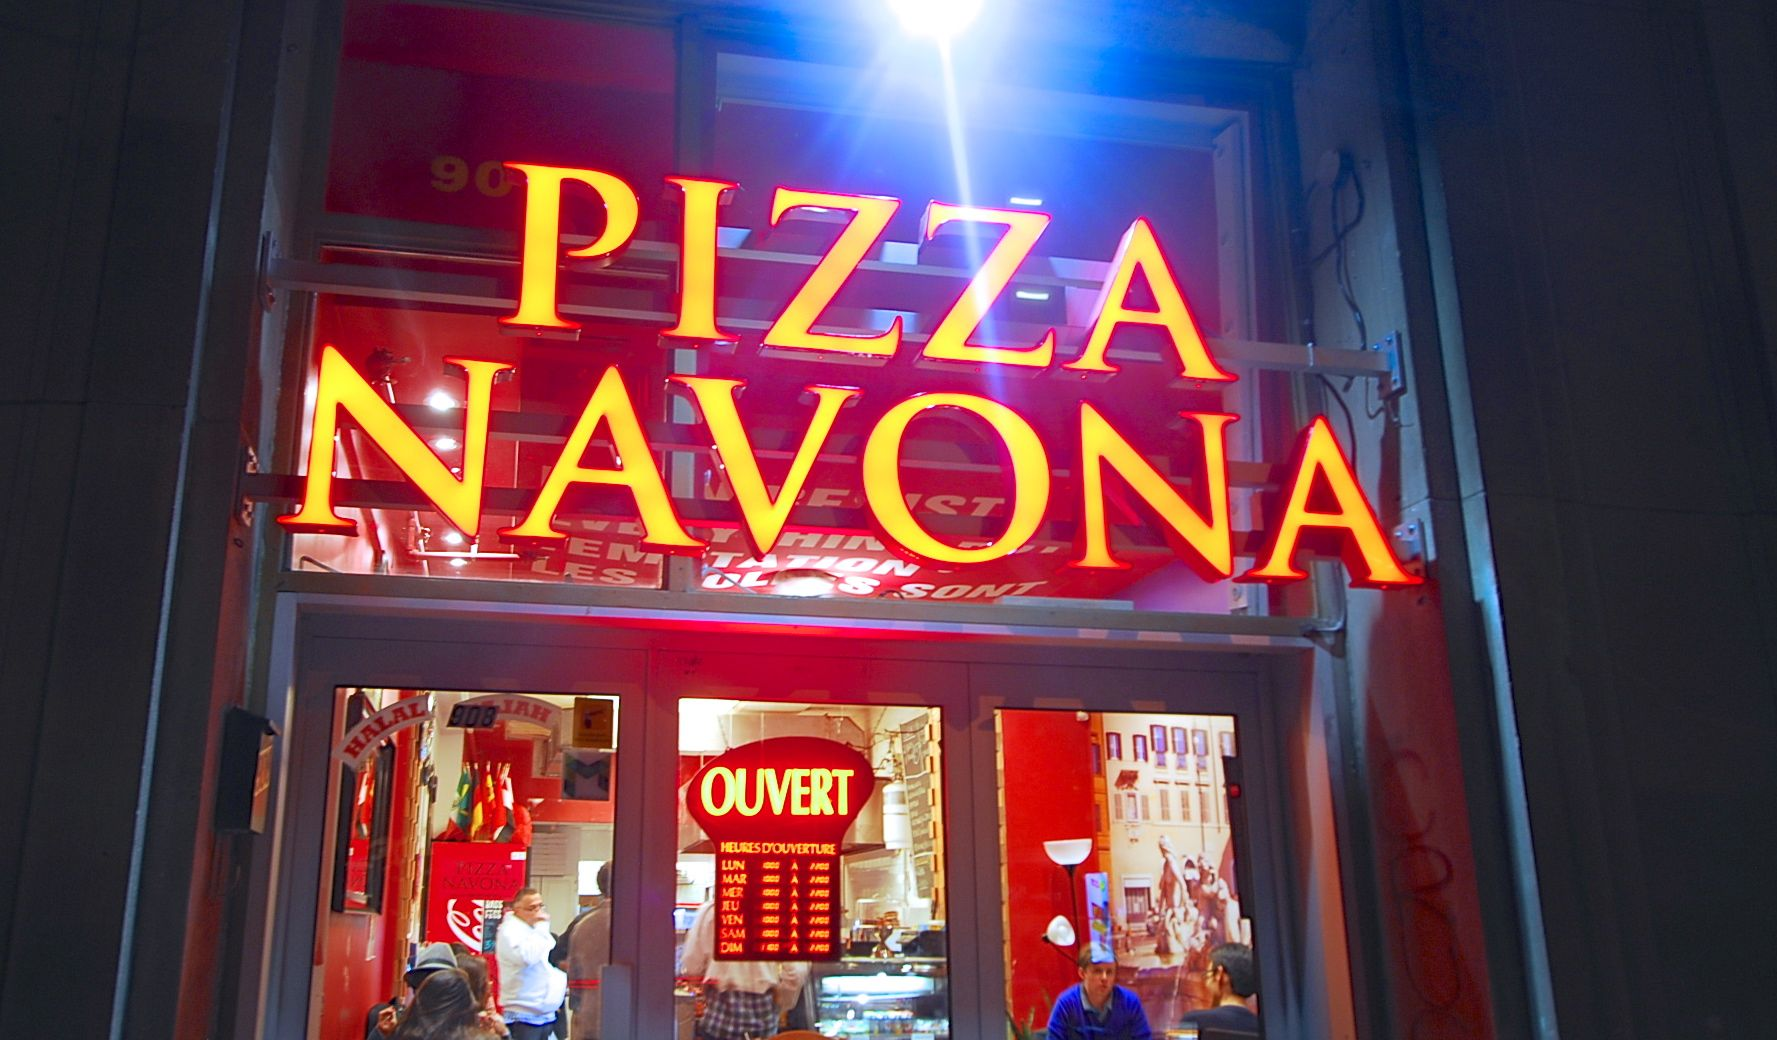 Pizza Navona (With images) Pizza lovers, Pizza, Italian